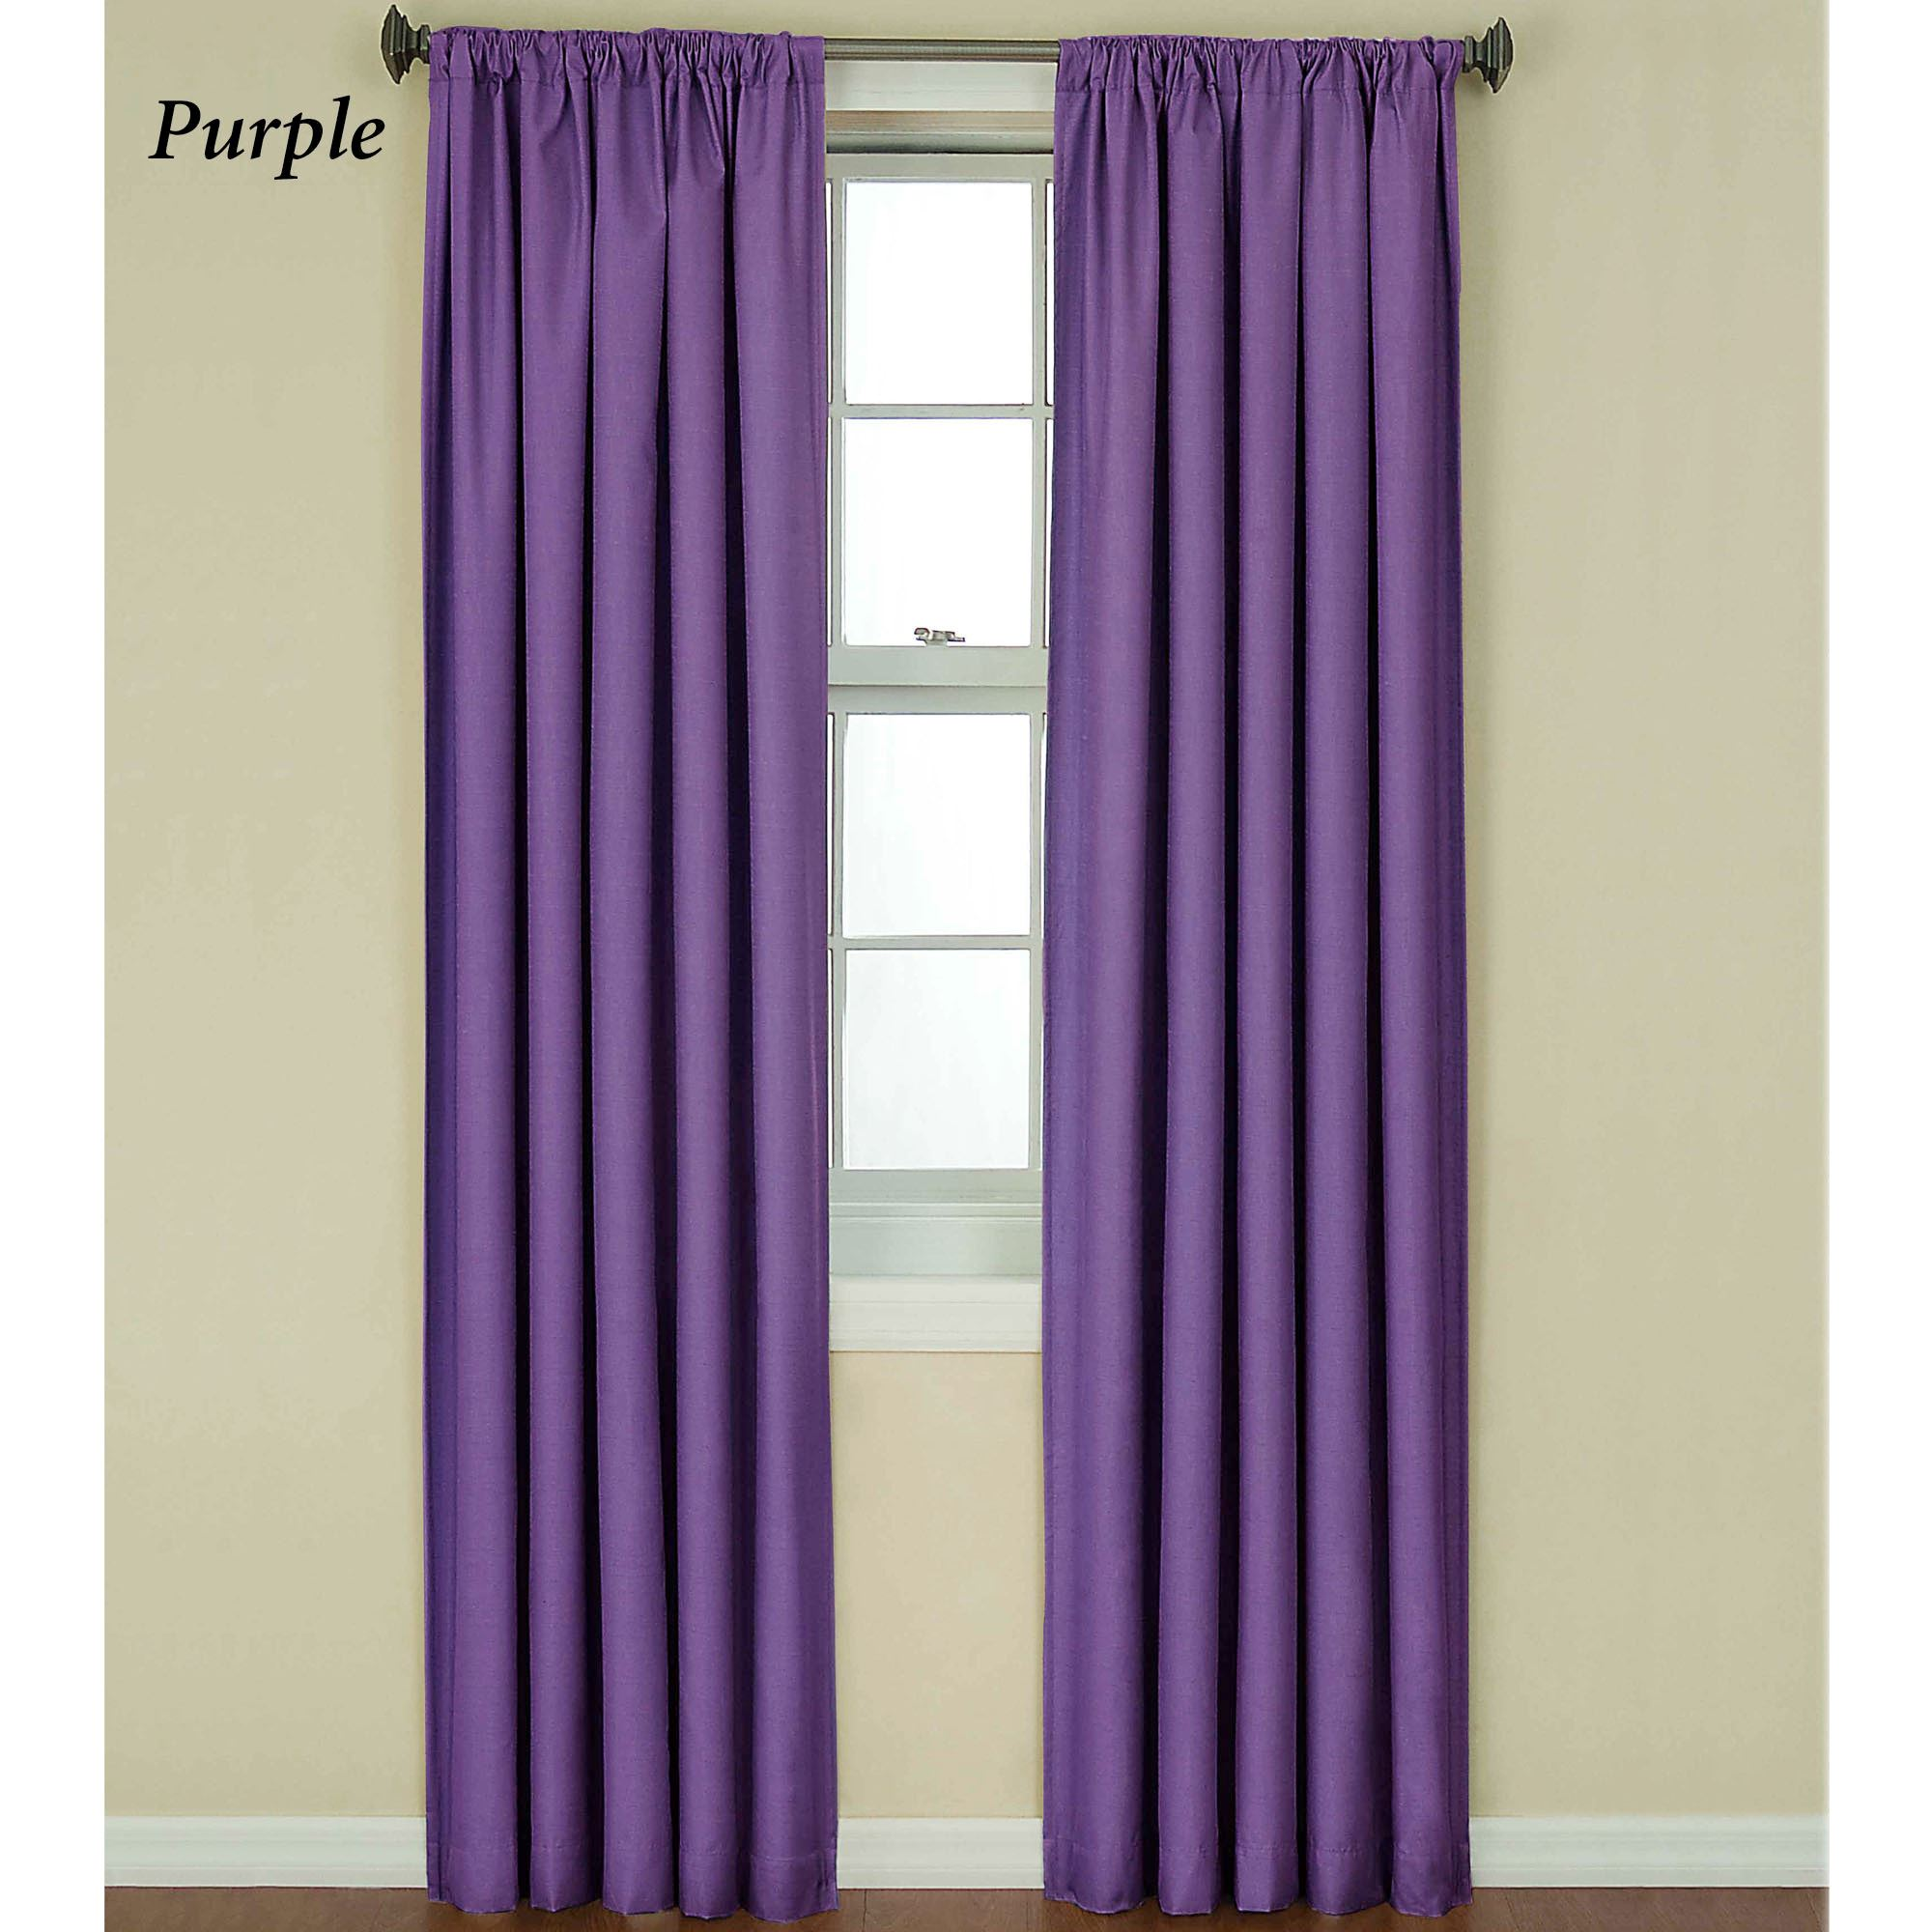 curtains purple curtain p modern and chic beige panels shabby